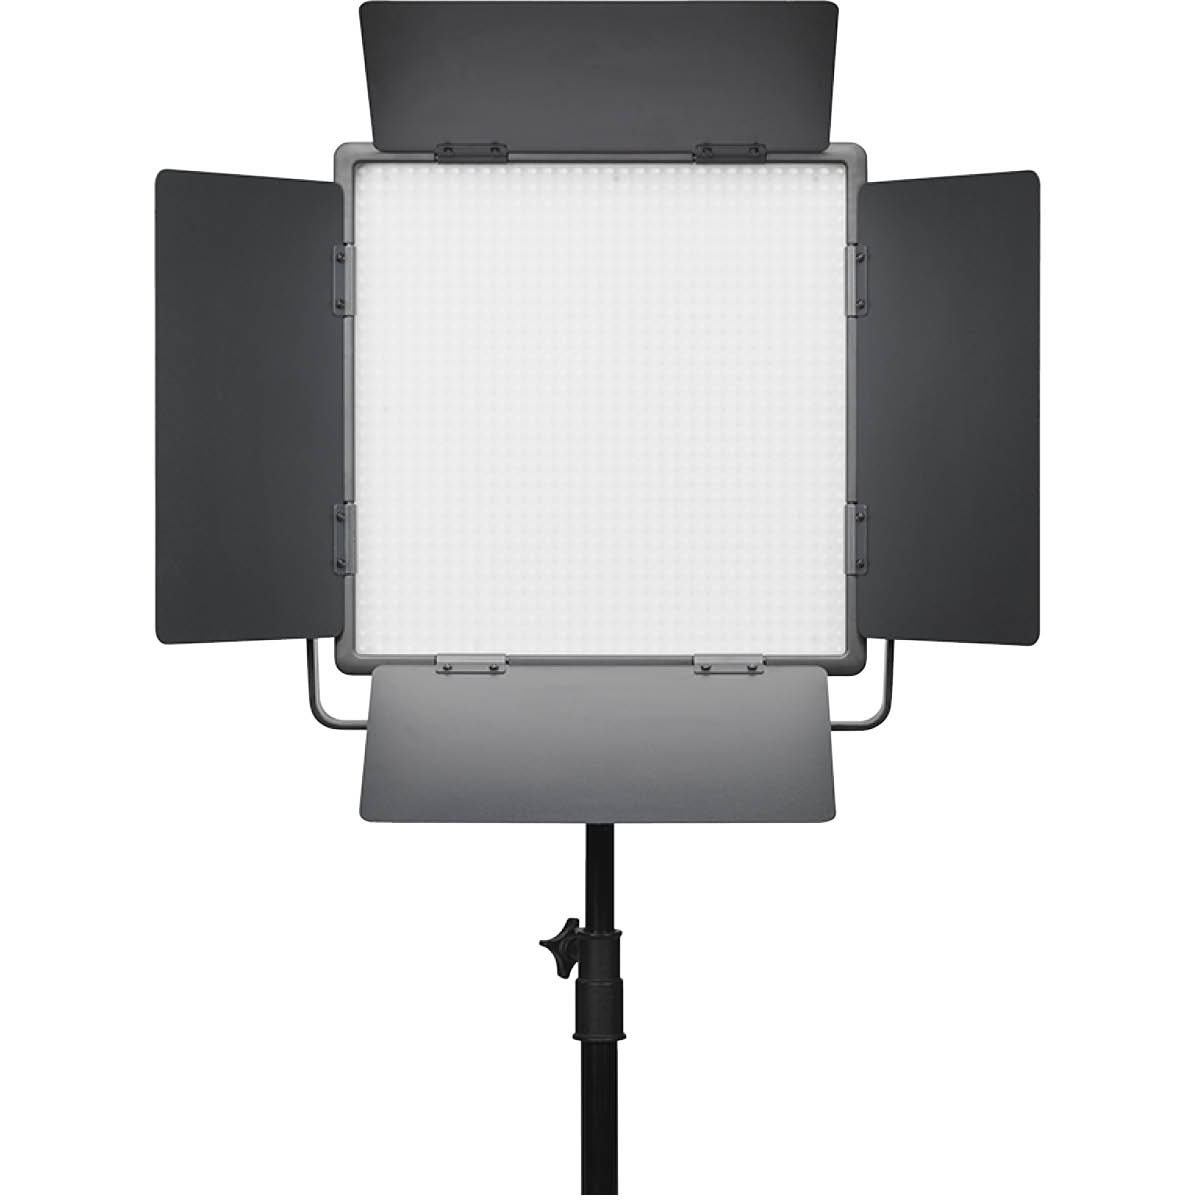 Cullmann CUlight VR 4400DL LED Leuchte